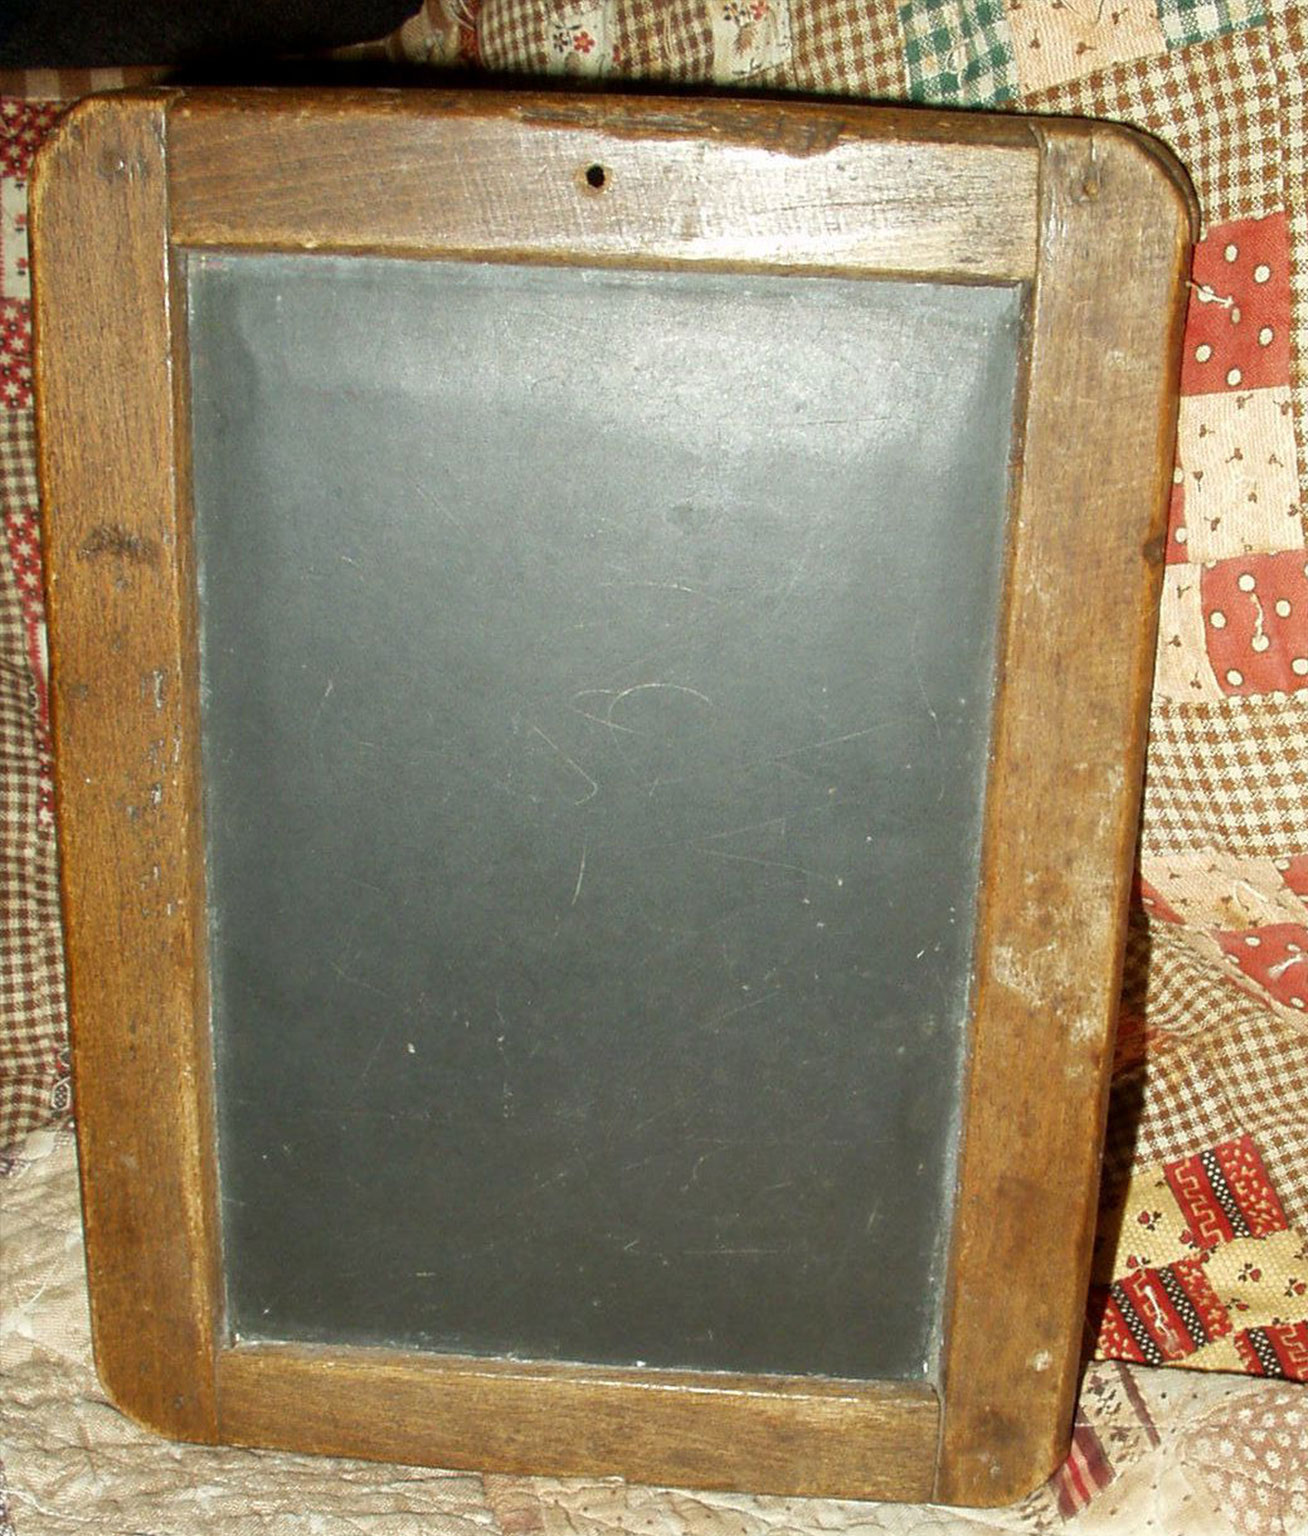 This is what a slate board may have looked like that was used by Finn and his classmates.